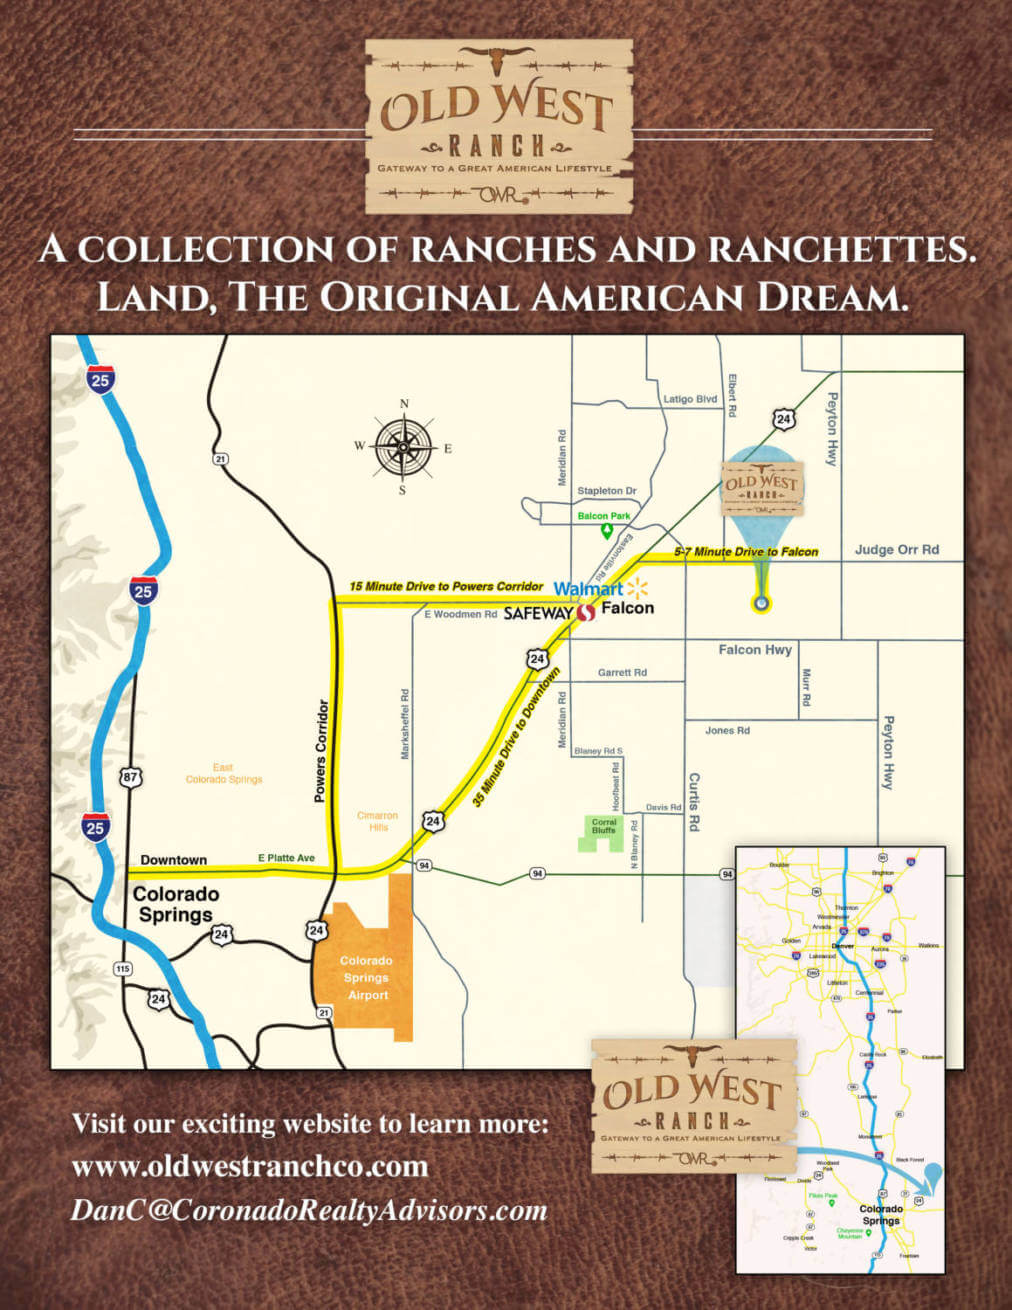 Old West Ranch CO Location Aerial Map -Colorado Springs Ranch land for sale - rural real estate